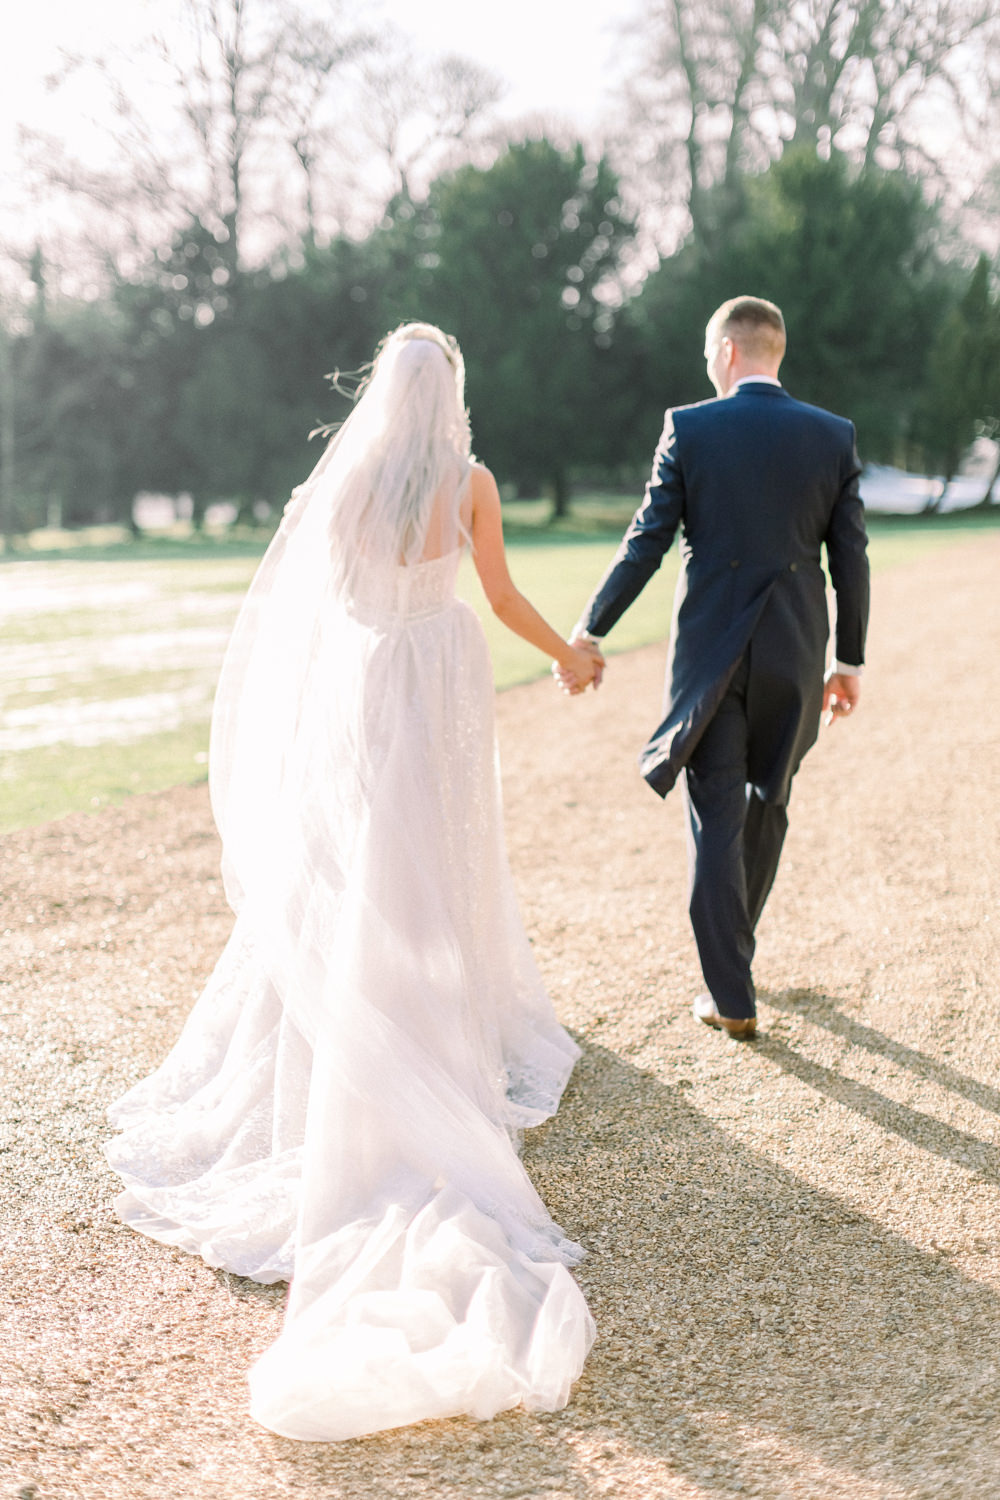 Bride Bridal Berta Princess Sparkly Dress Gown Veil Navy Tailcoat Groom Train Aynhoe Park Wedding Sanshine Photography